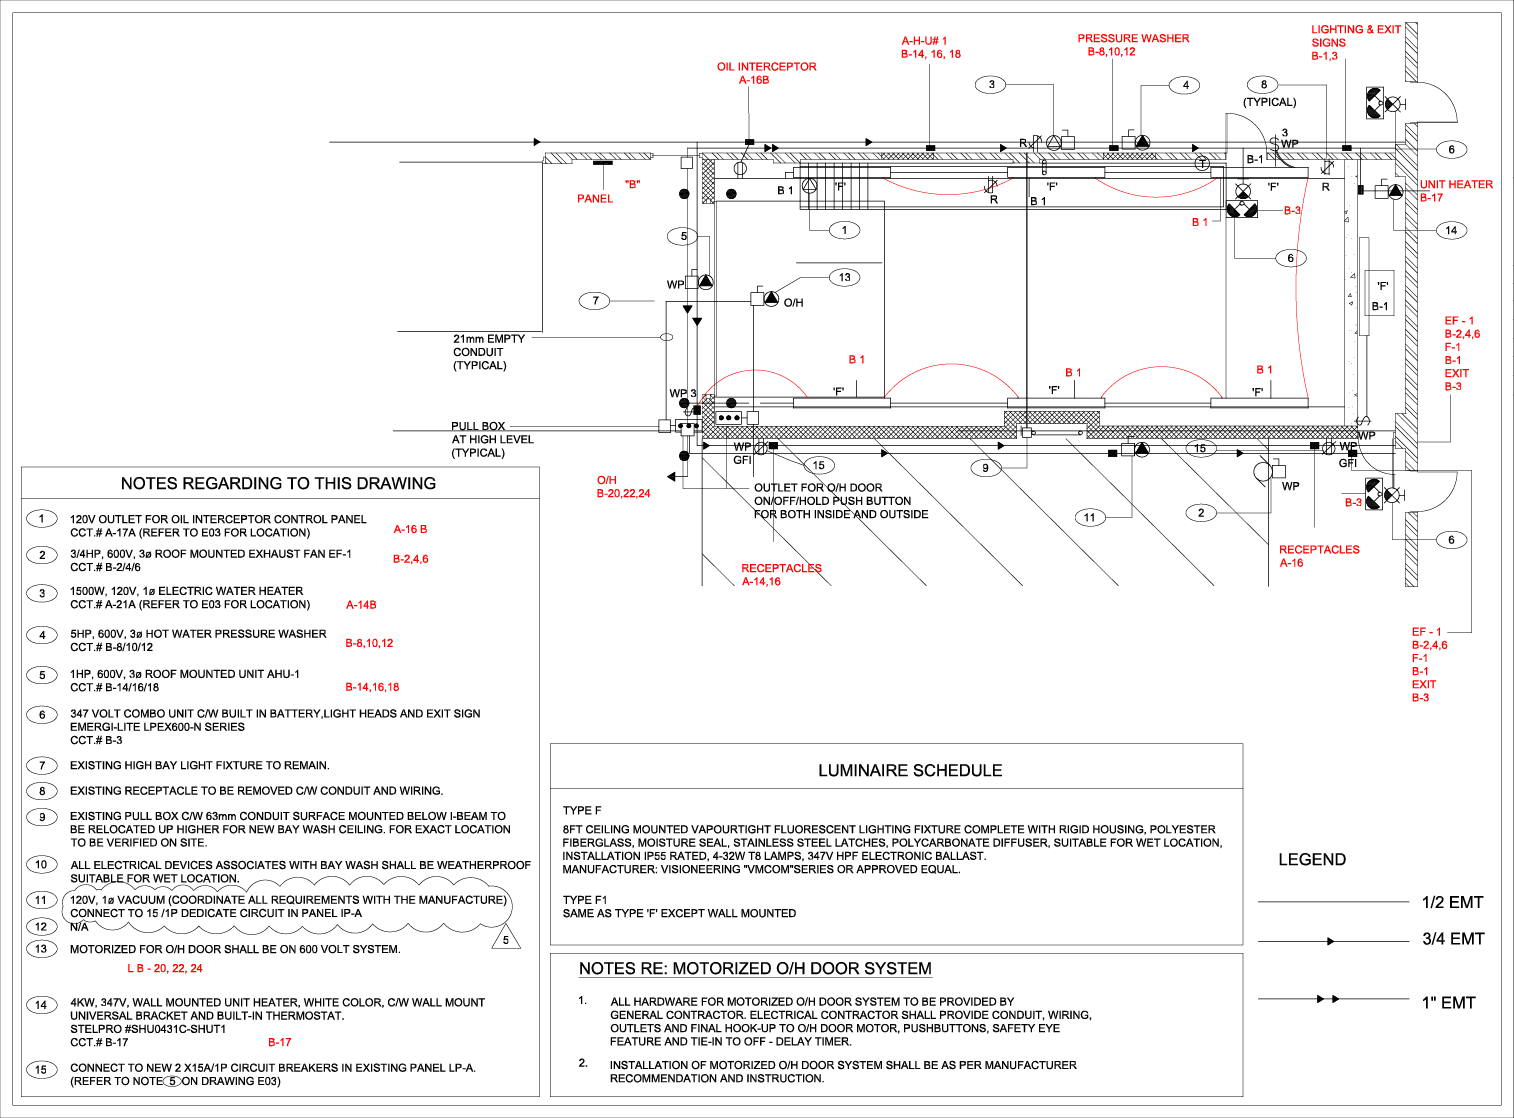 Toronto Cad Services Autocad Drafting Technical Drawings Electrical Schematic Lighting Power Layout